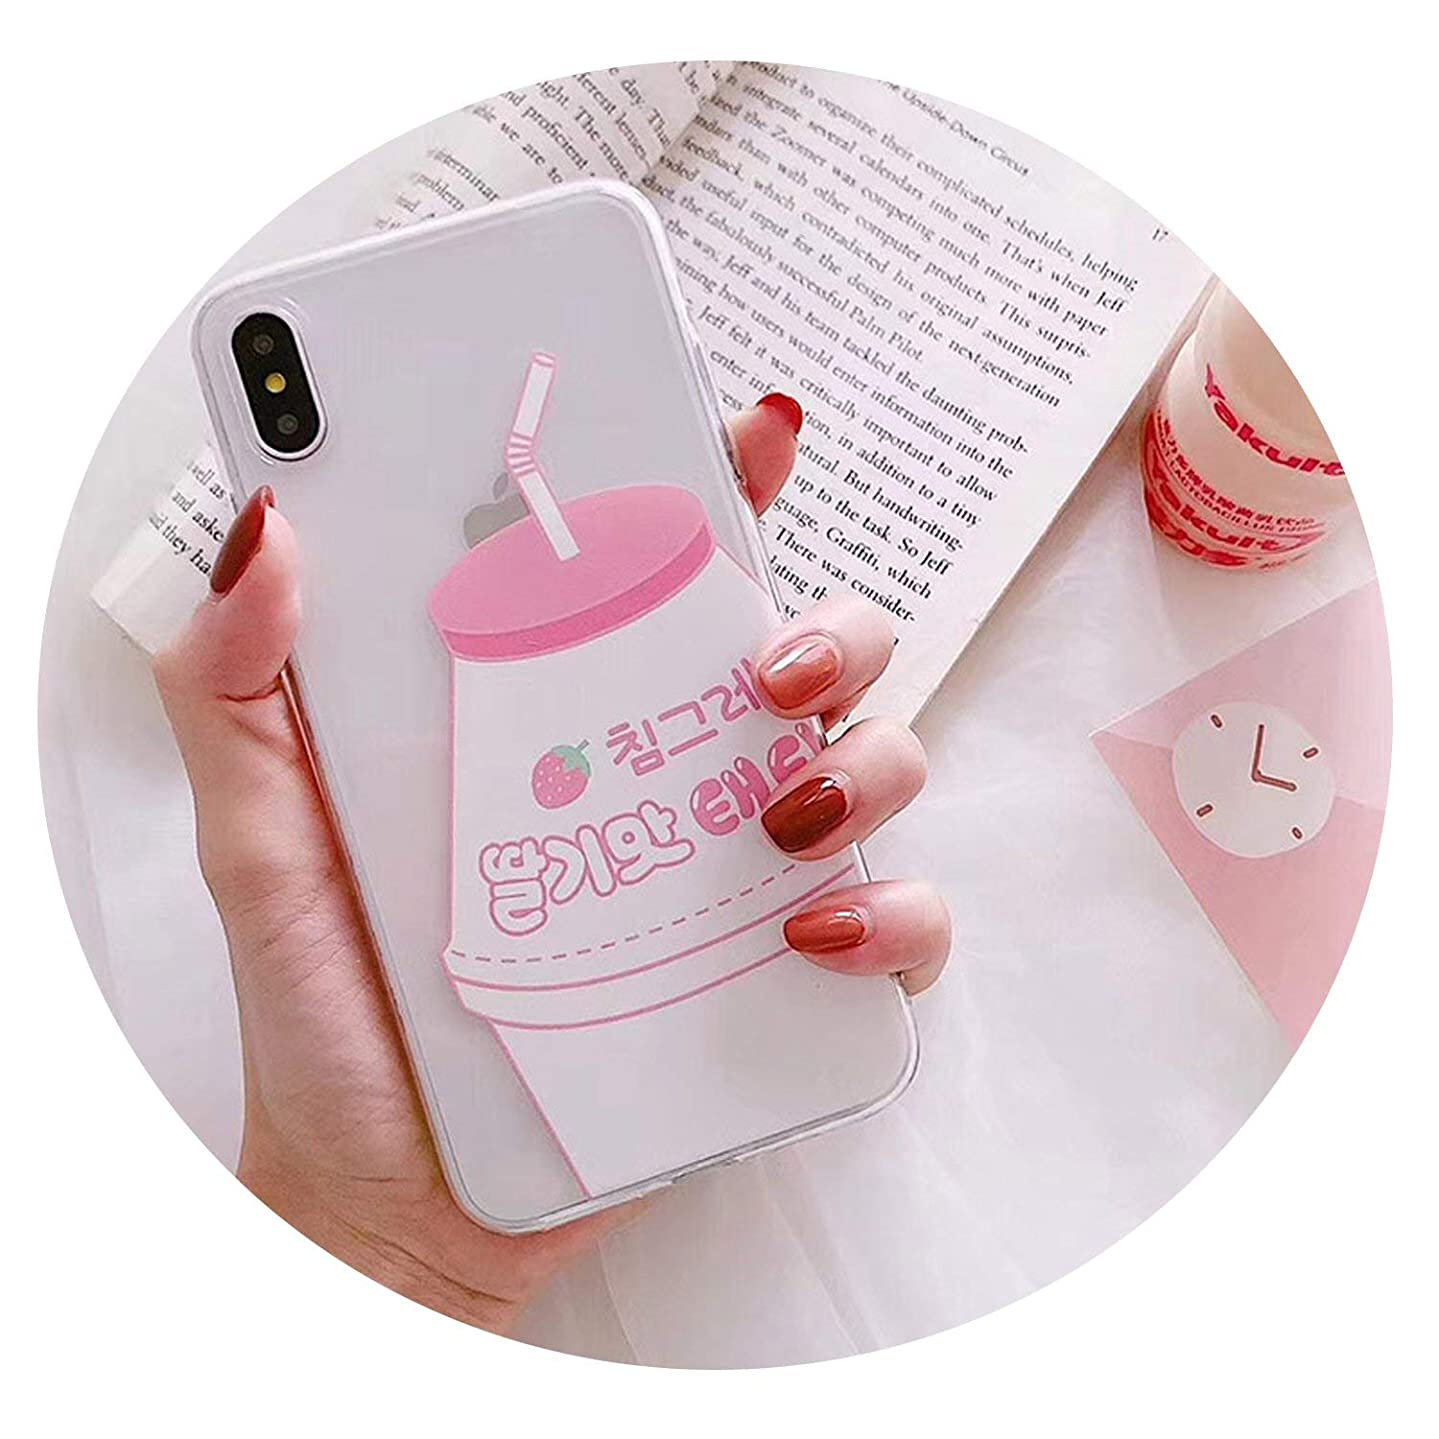 Korean Pink Strawberry Yogurt Mobile Phone case for iPhoneX XR XS MAX Couple Mobile Phone case for iPhone 7 6 8 Plus case,Red,for iPhone Xs Max